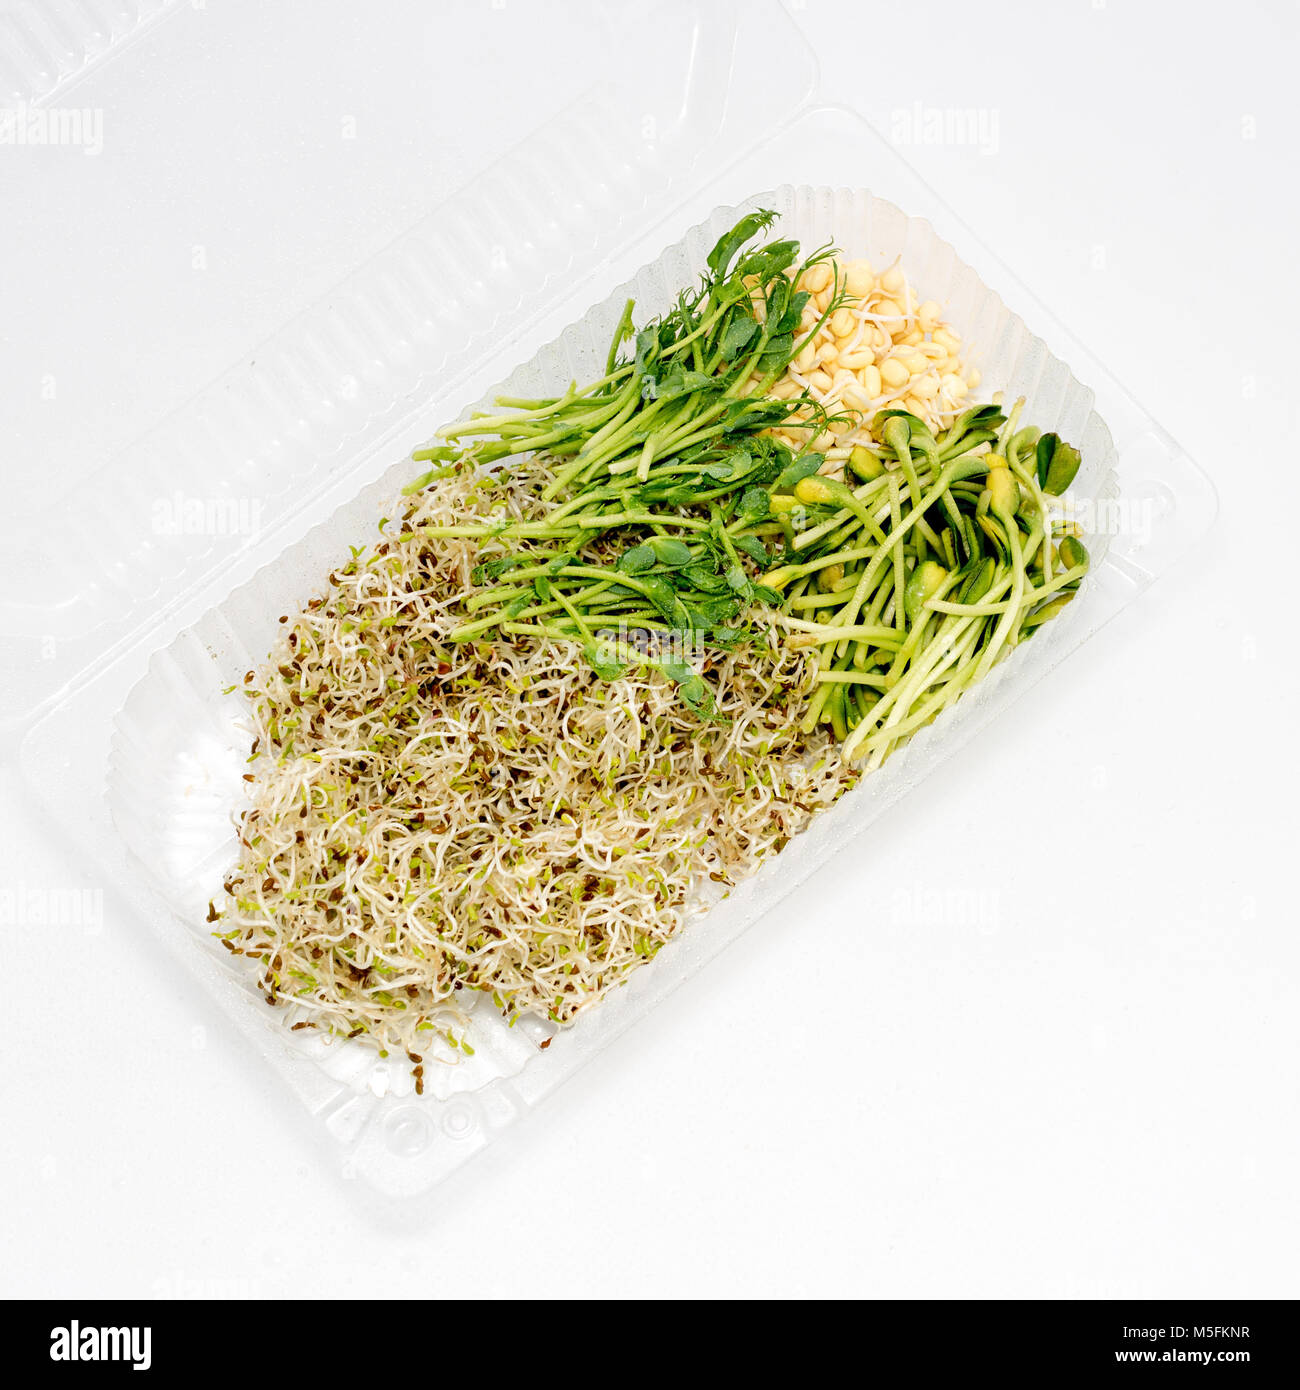 Different types of micro greens in plastic container on white background. Healthy eating concept of fresh garden Stock Photo